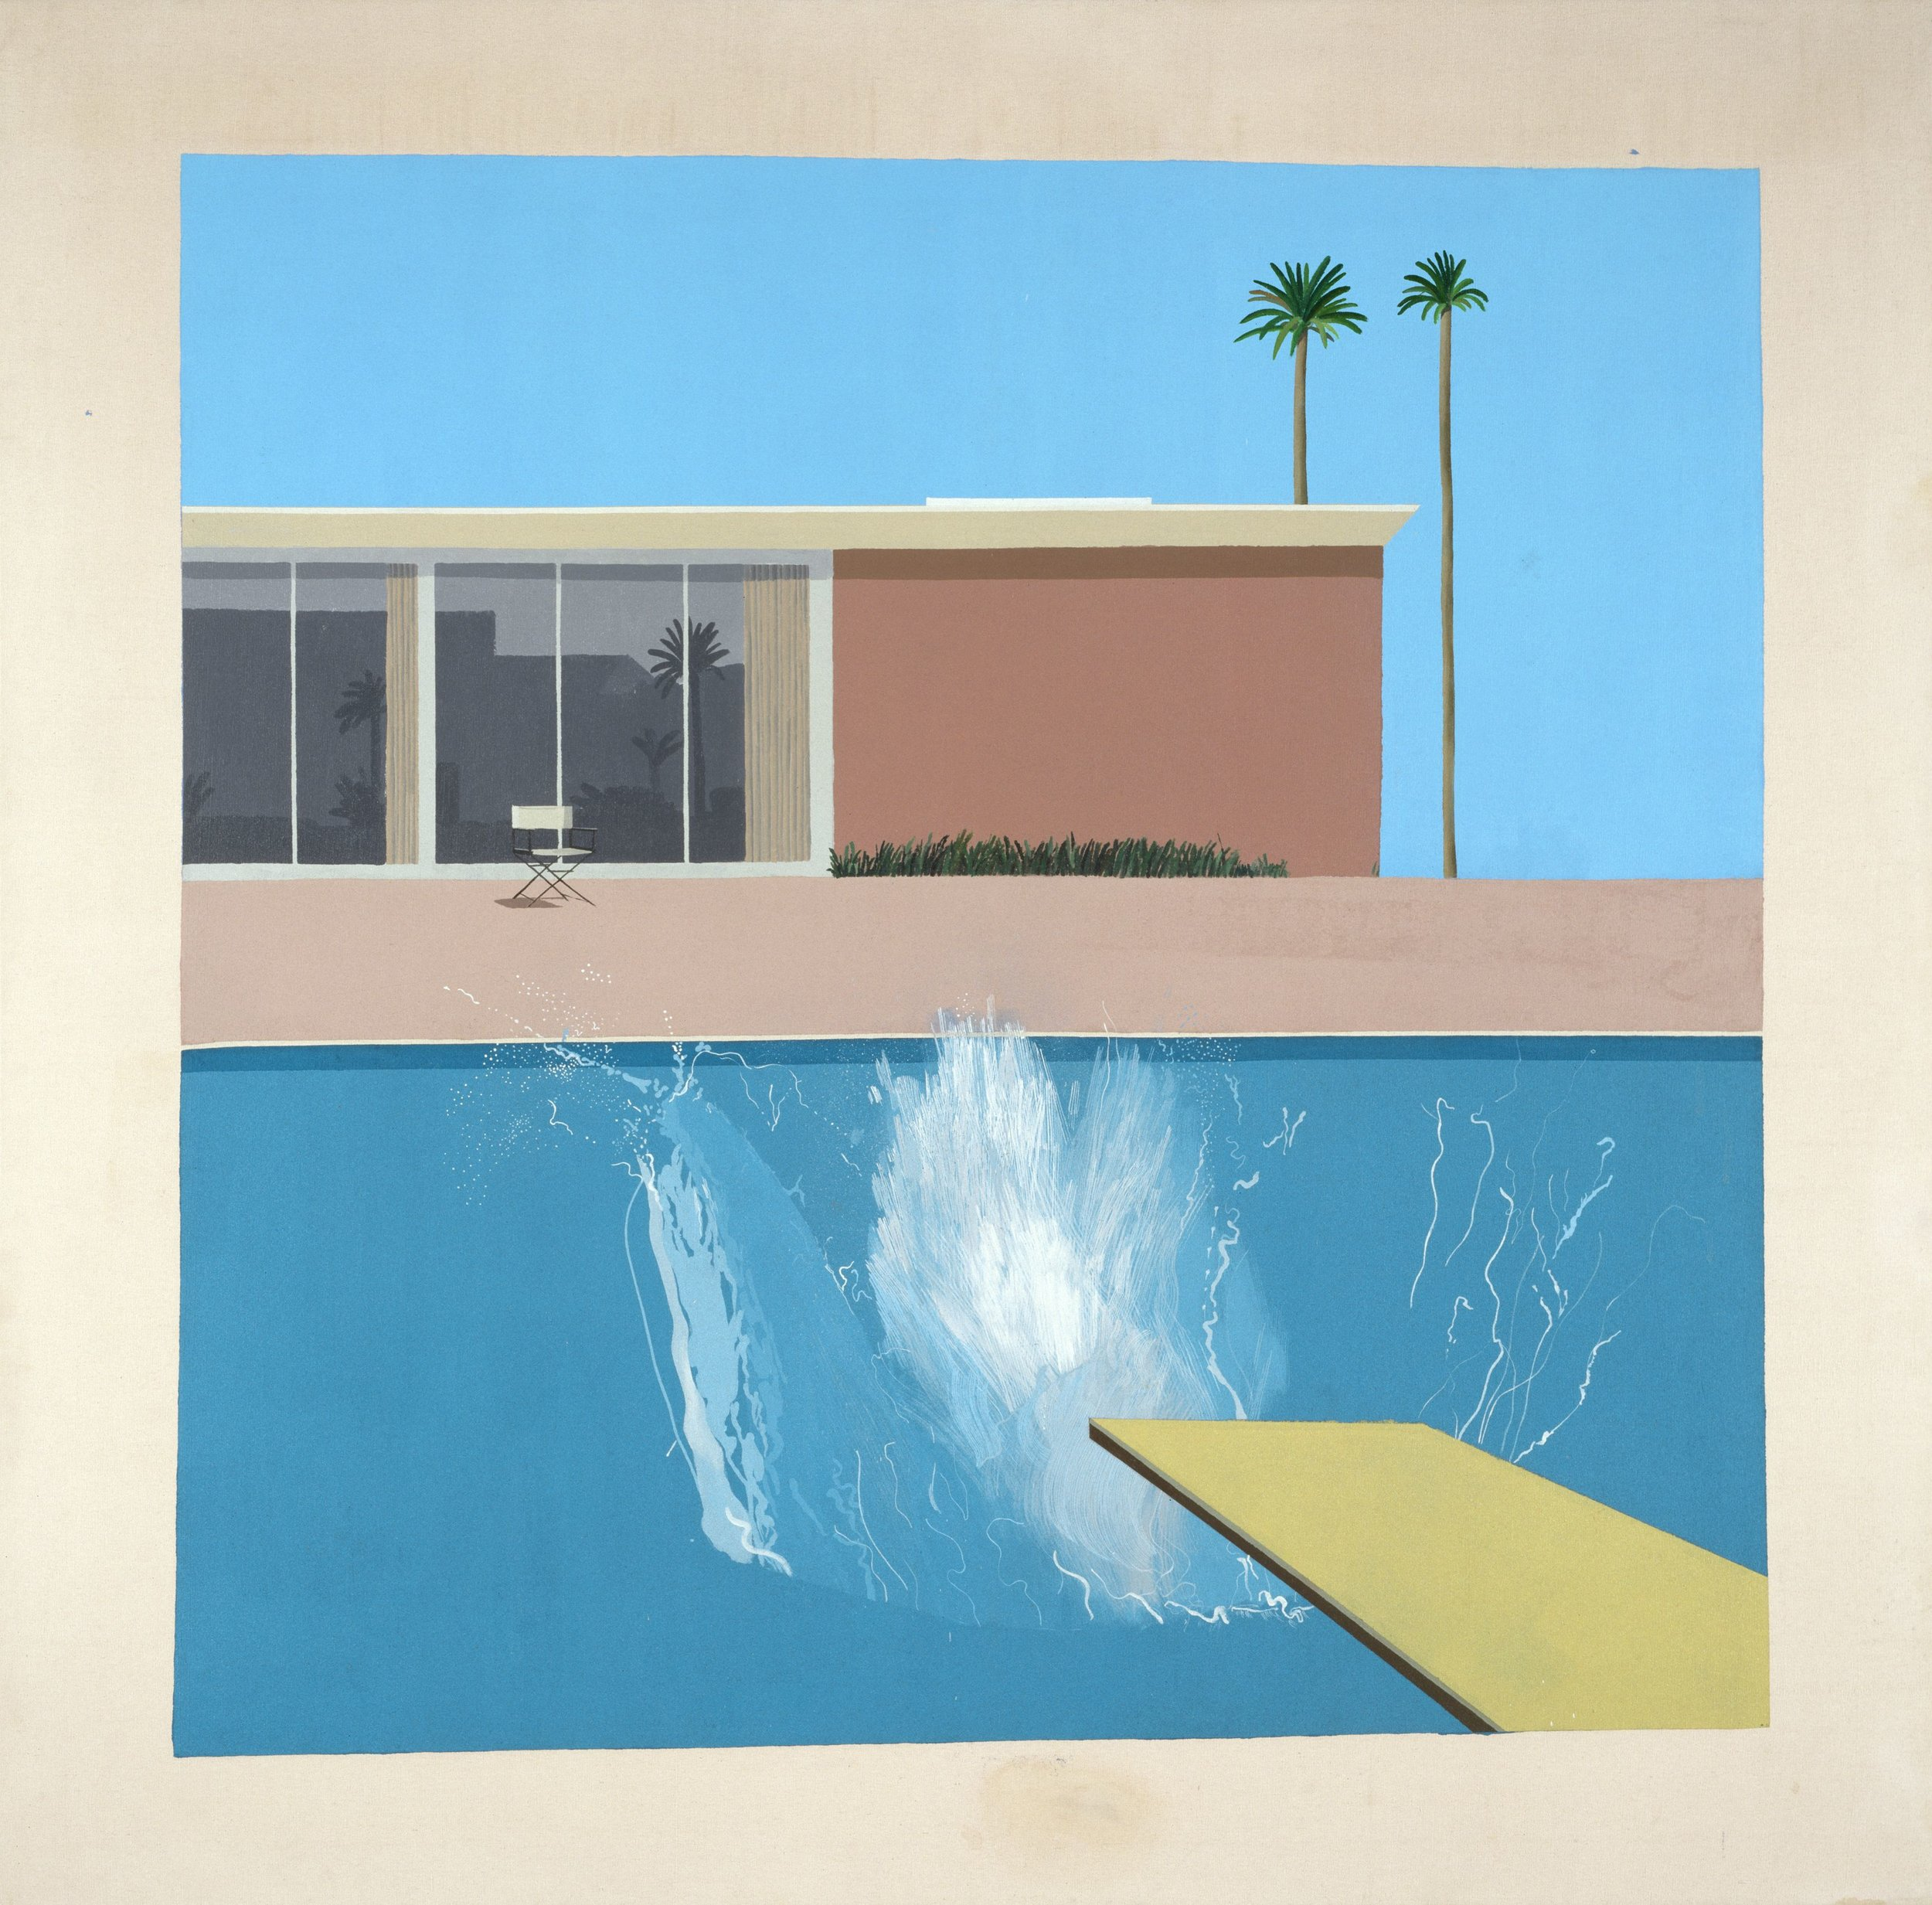 A Bigger Splash  , 1967 [Une gerbe d'eau encore plus grande] Acrylique sur toile 242,5 x 244 cm © David Hockney Collection Tate, London, purchased 1981